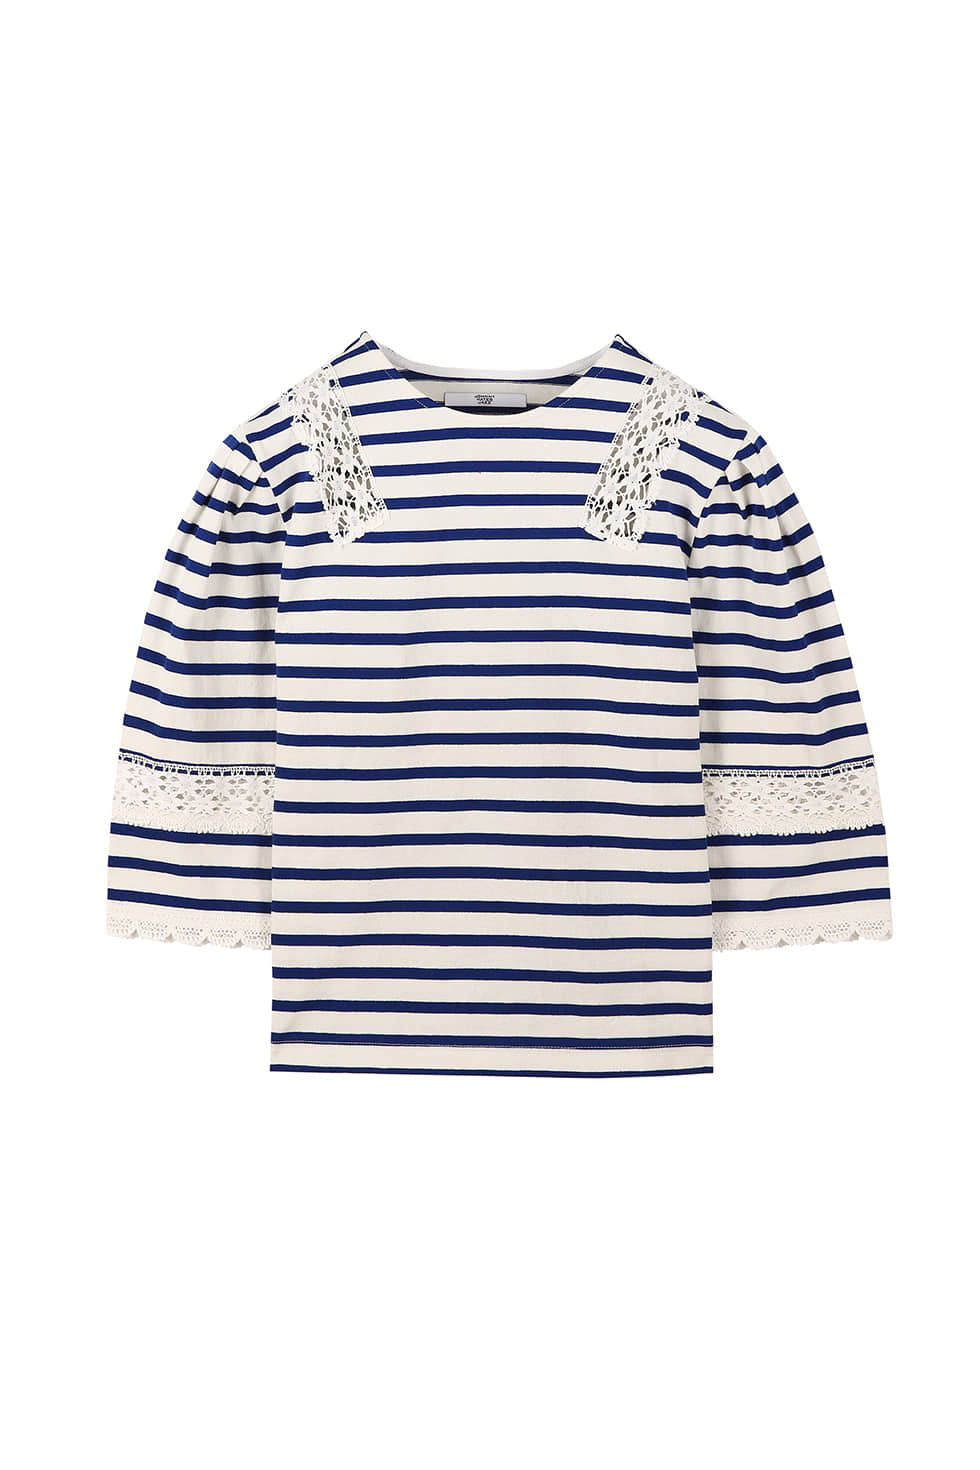 STRIPE JERSEY TOP - BLUE